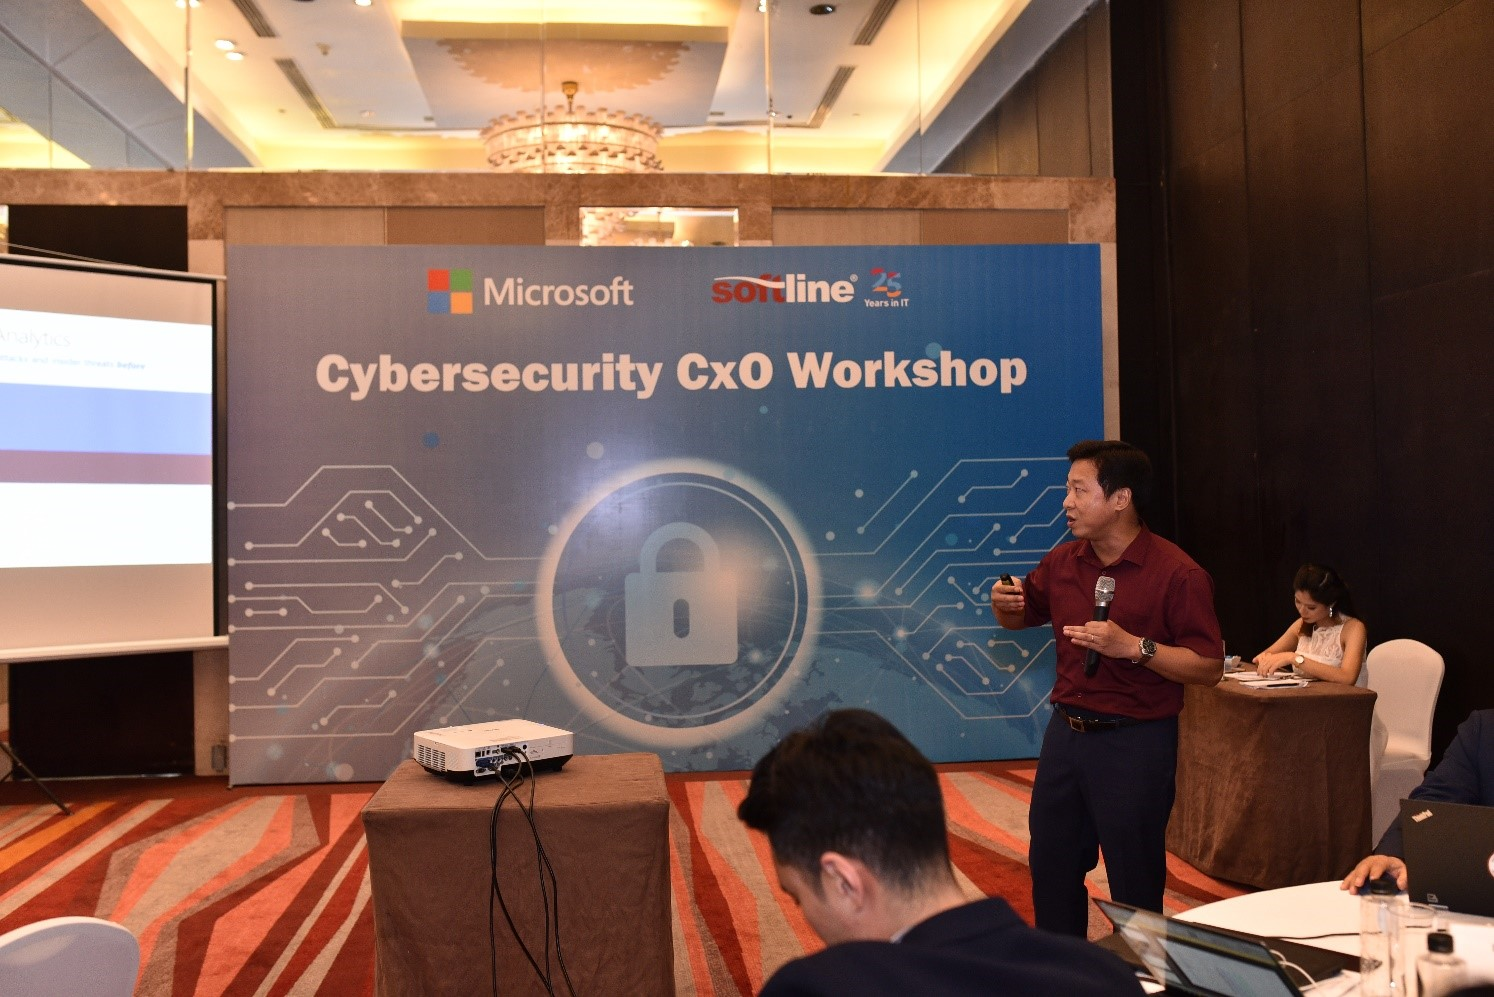 Mr. Giang Nguyen- Cloud Specialist from Softline was presenting a new IT solution known as Modern Desktop